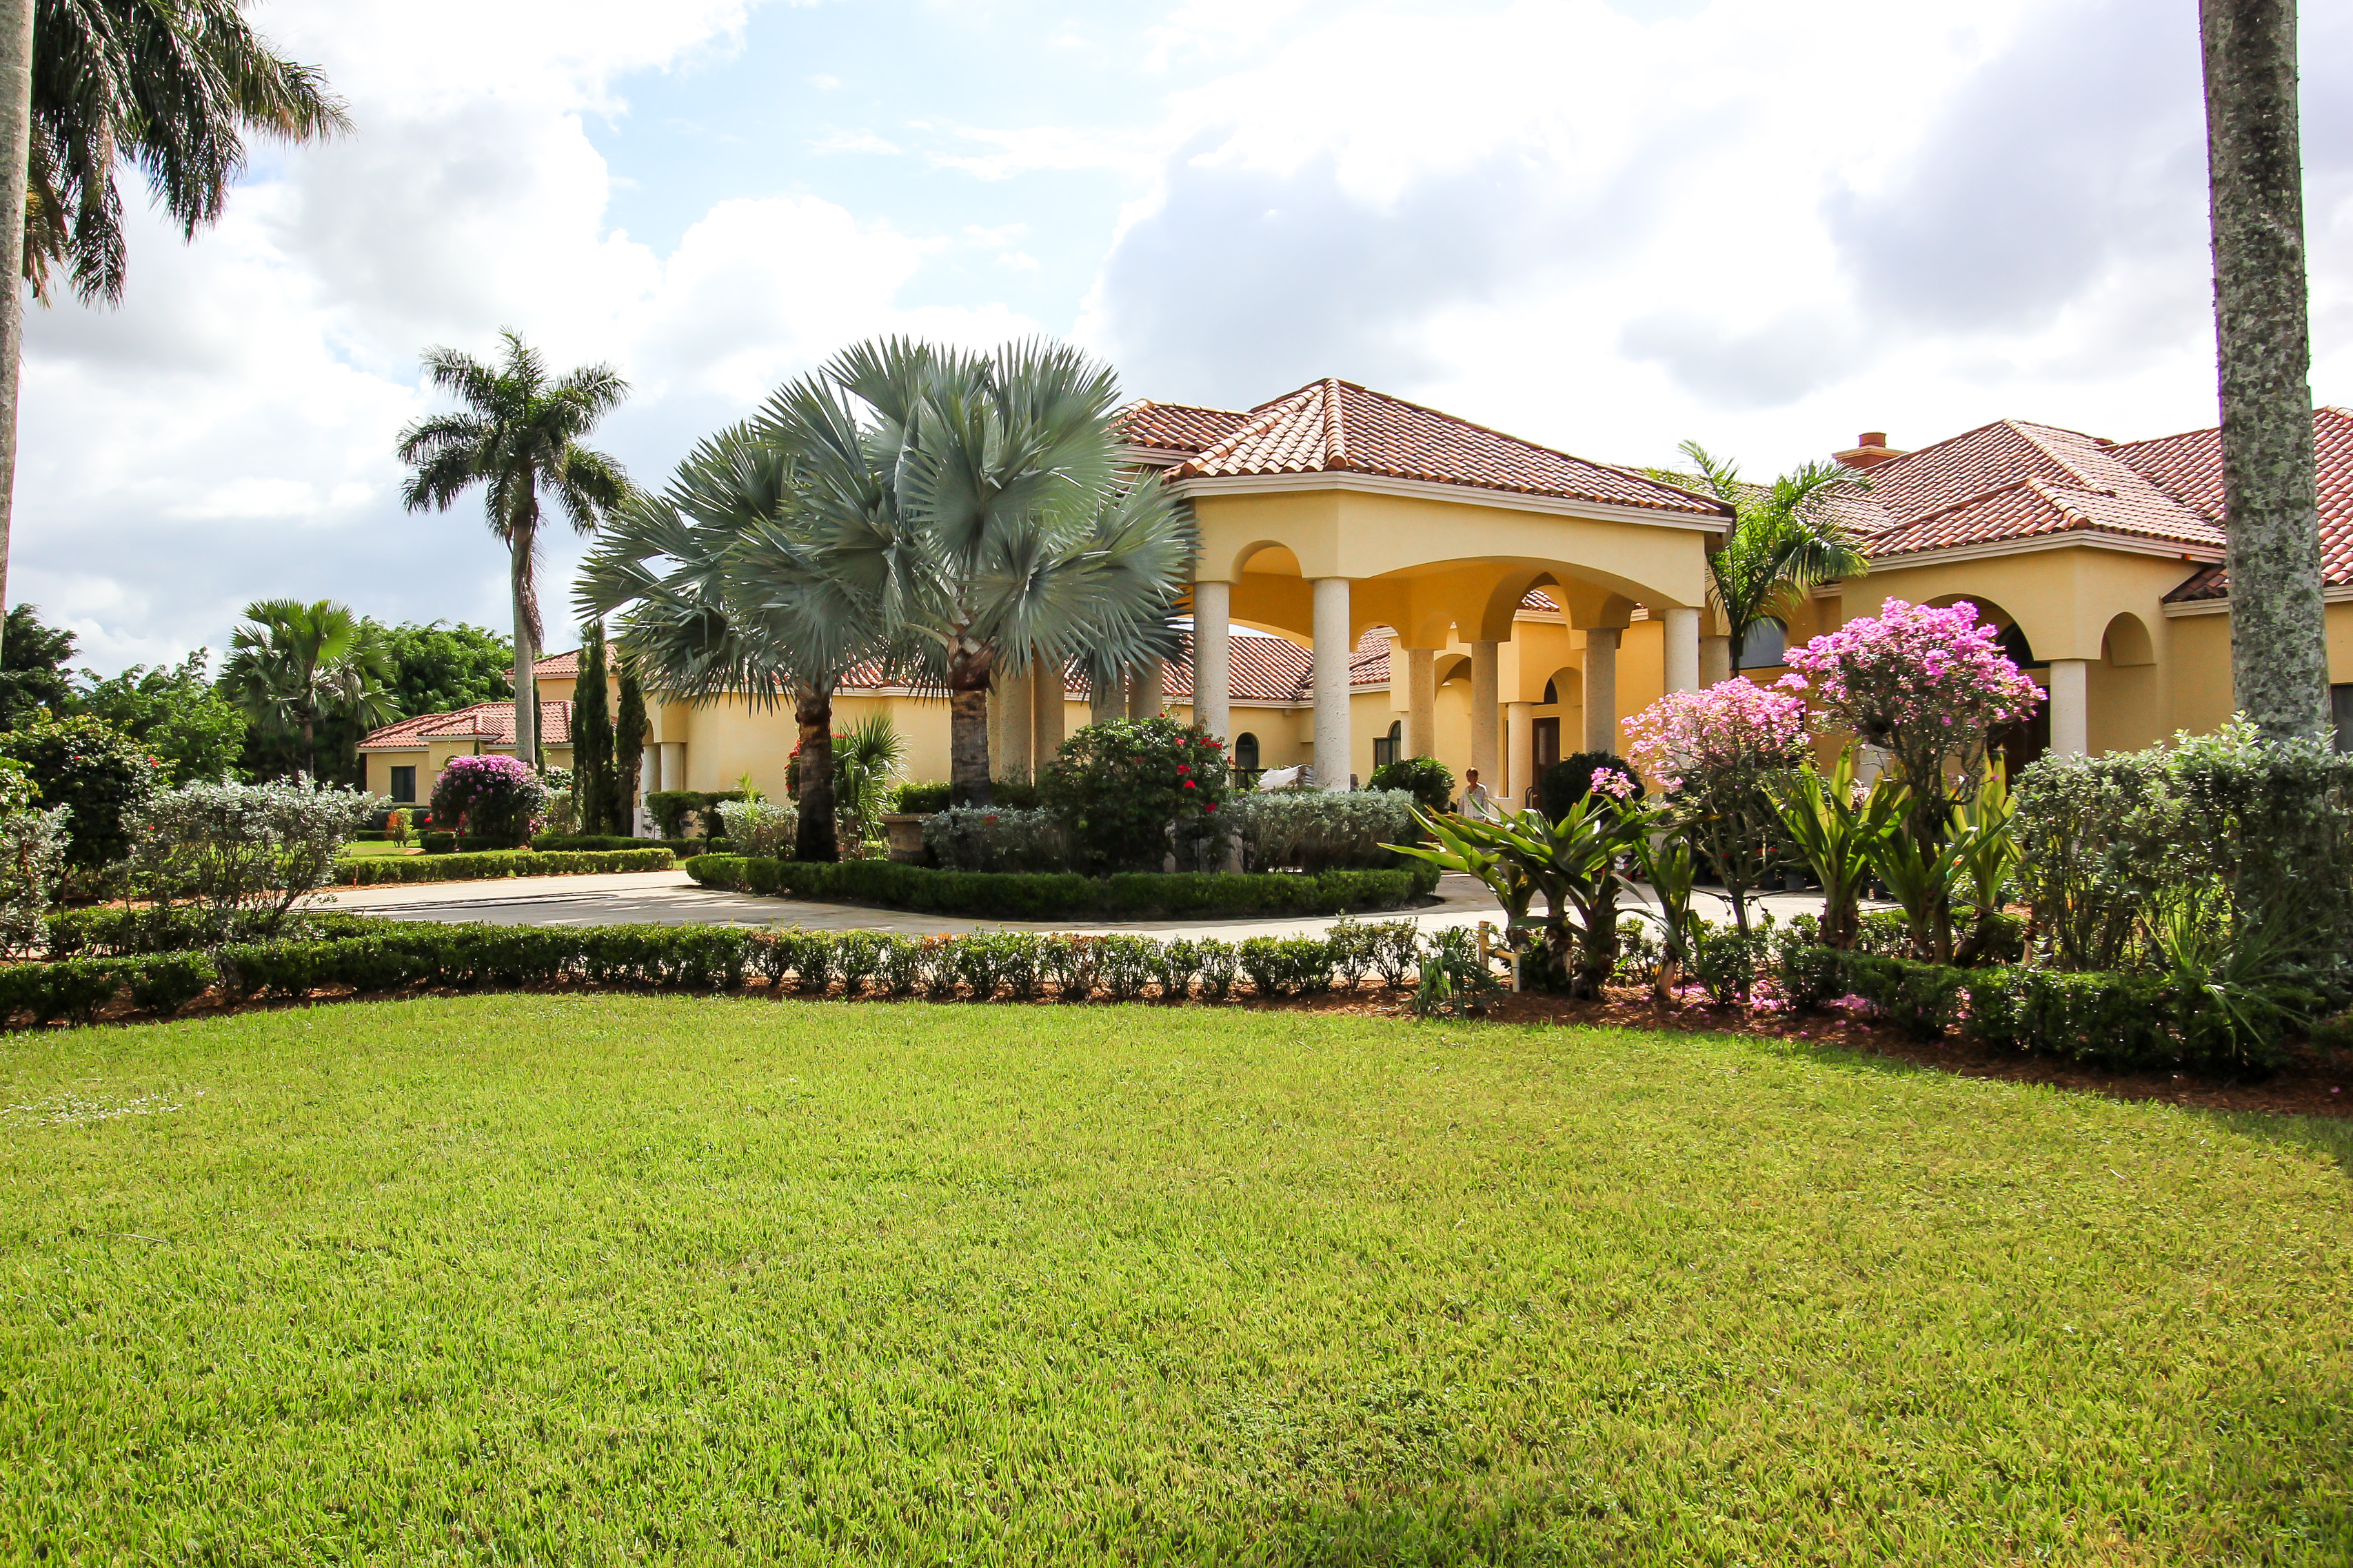 Villa per Vendita alle ore 15300 Golden Point Lane Palm Beach Point, Wellington, Florida 33414 Stati Uniti